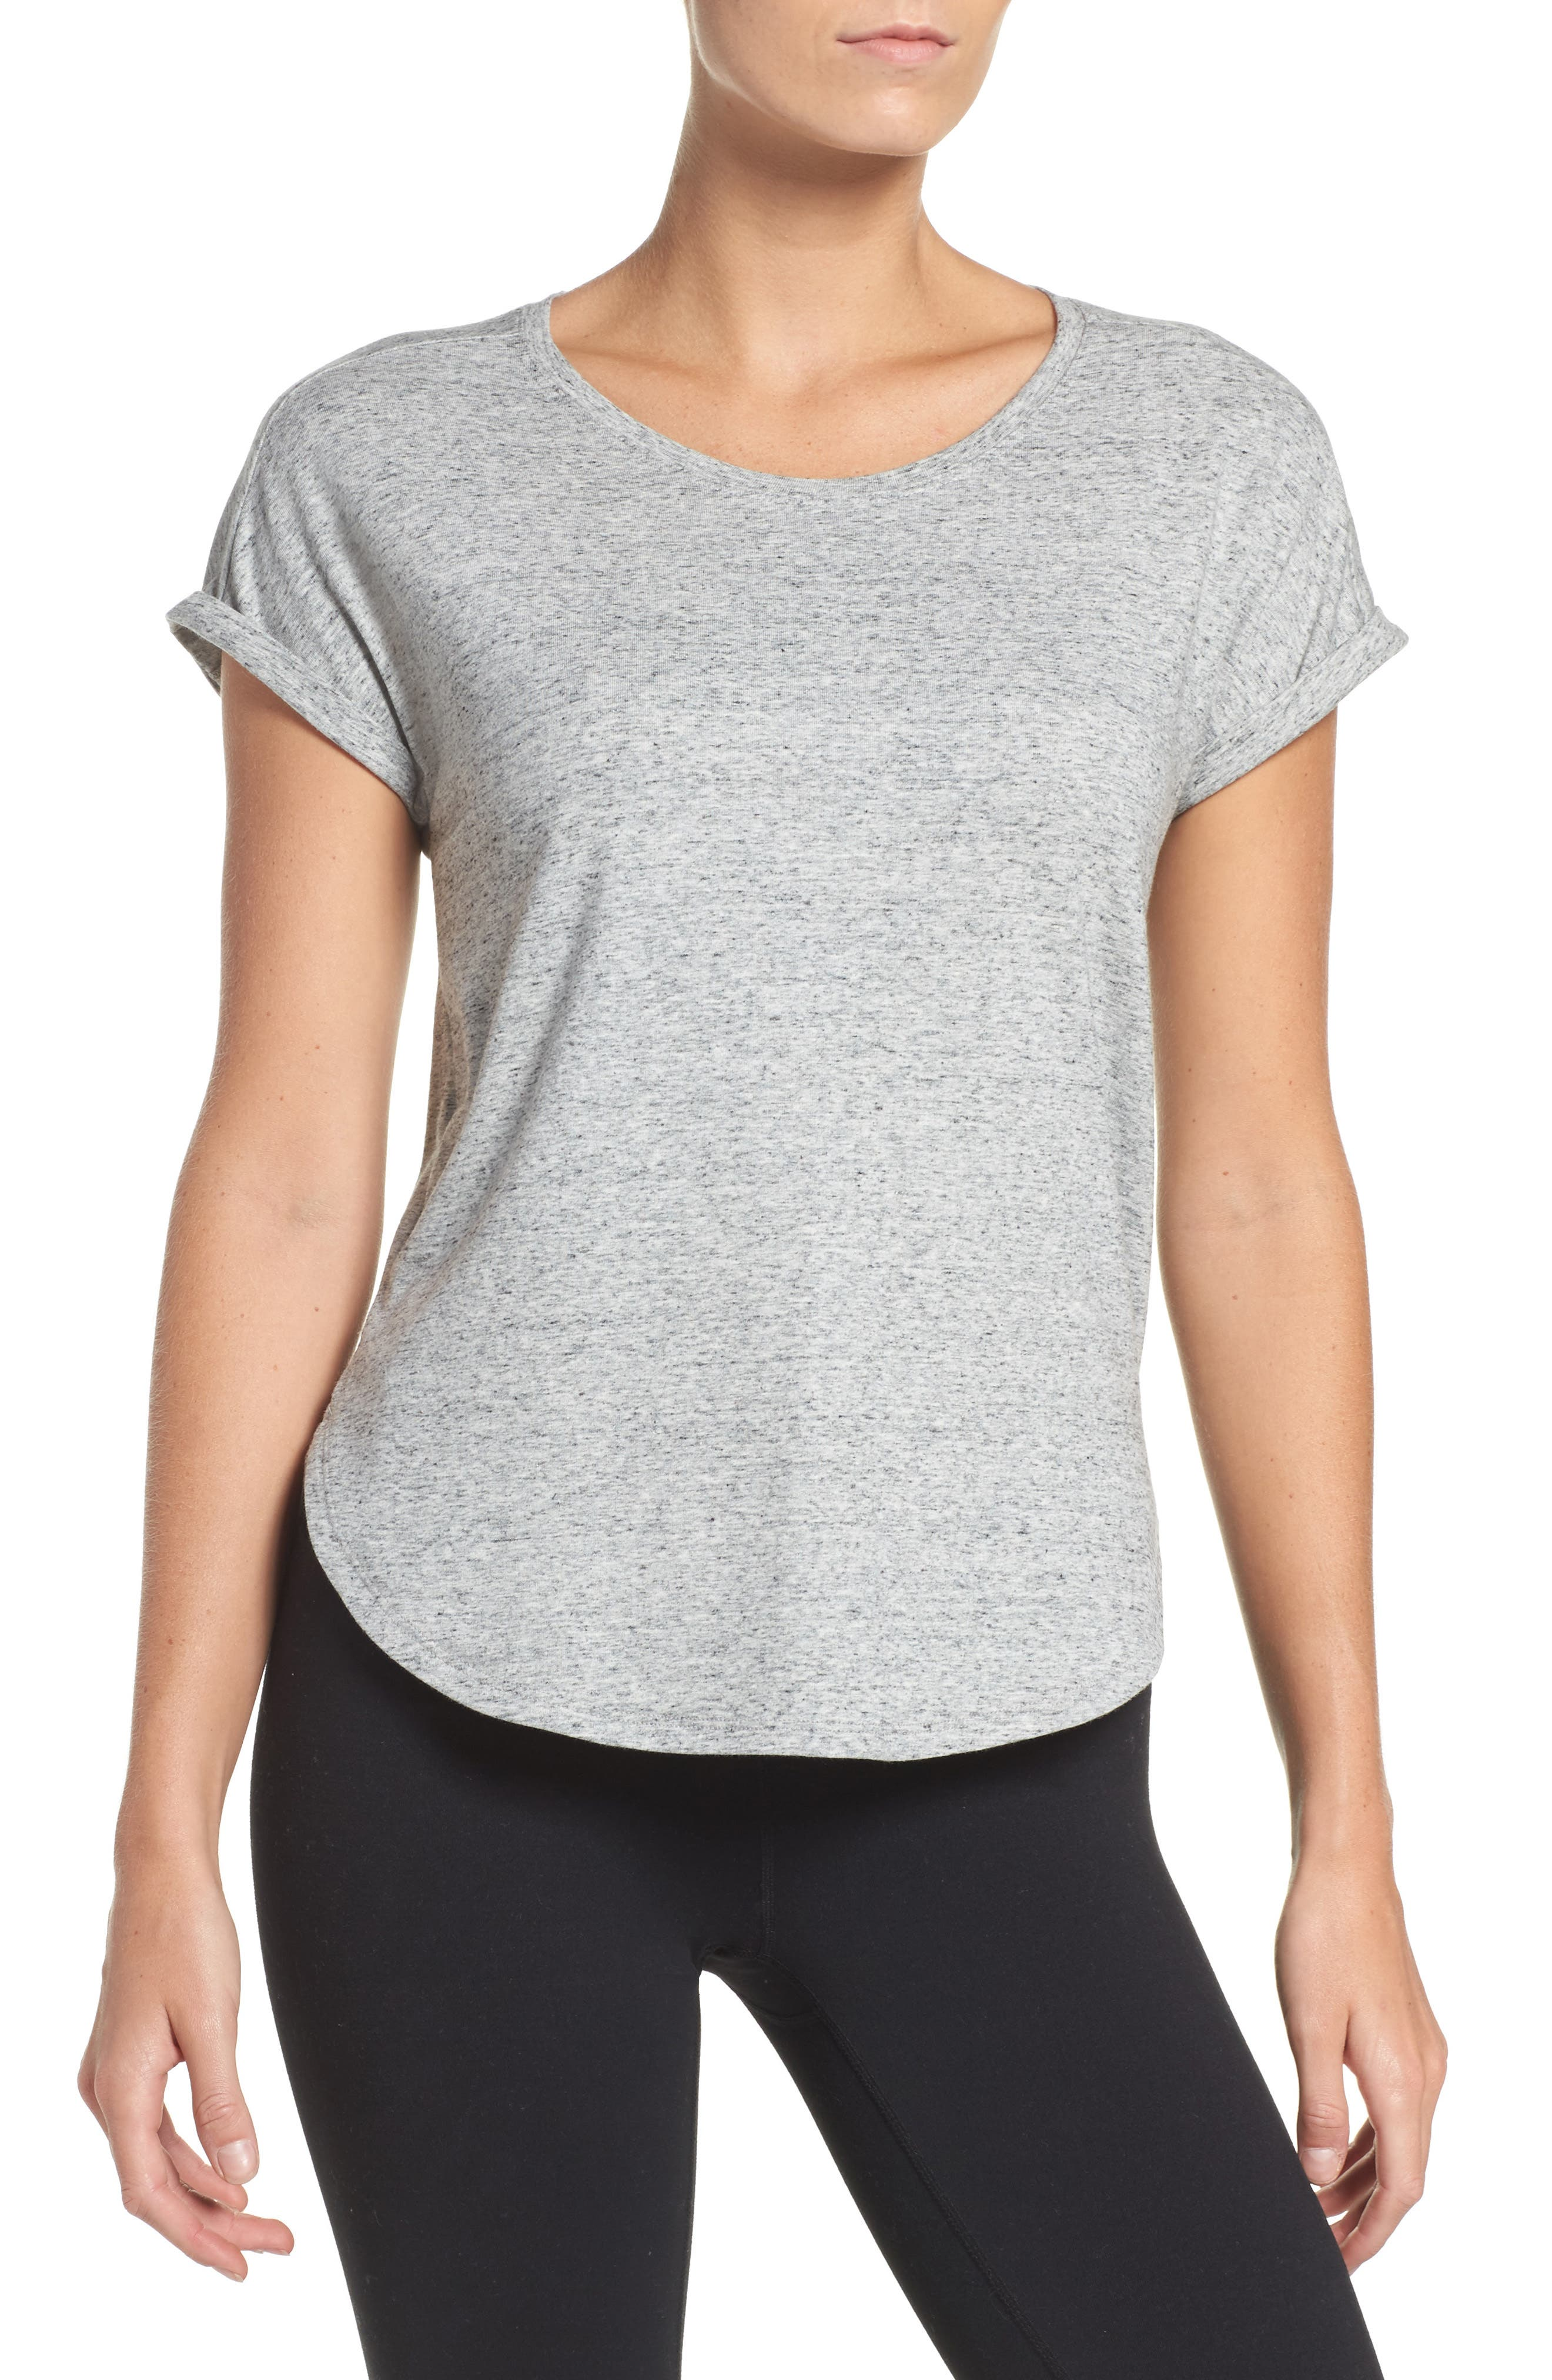 Performer High/Low Climalite<sup>®</sup> Tee,                             Main thumbnail 1, color,                             Grey